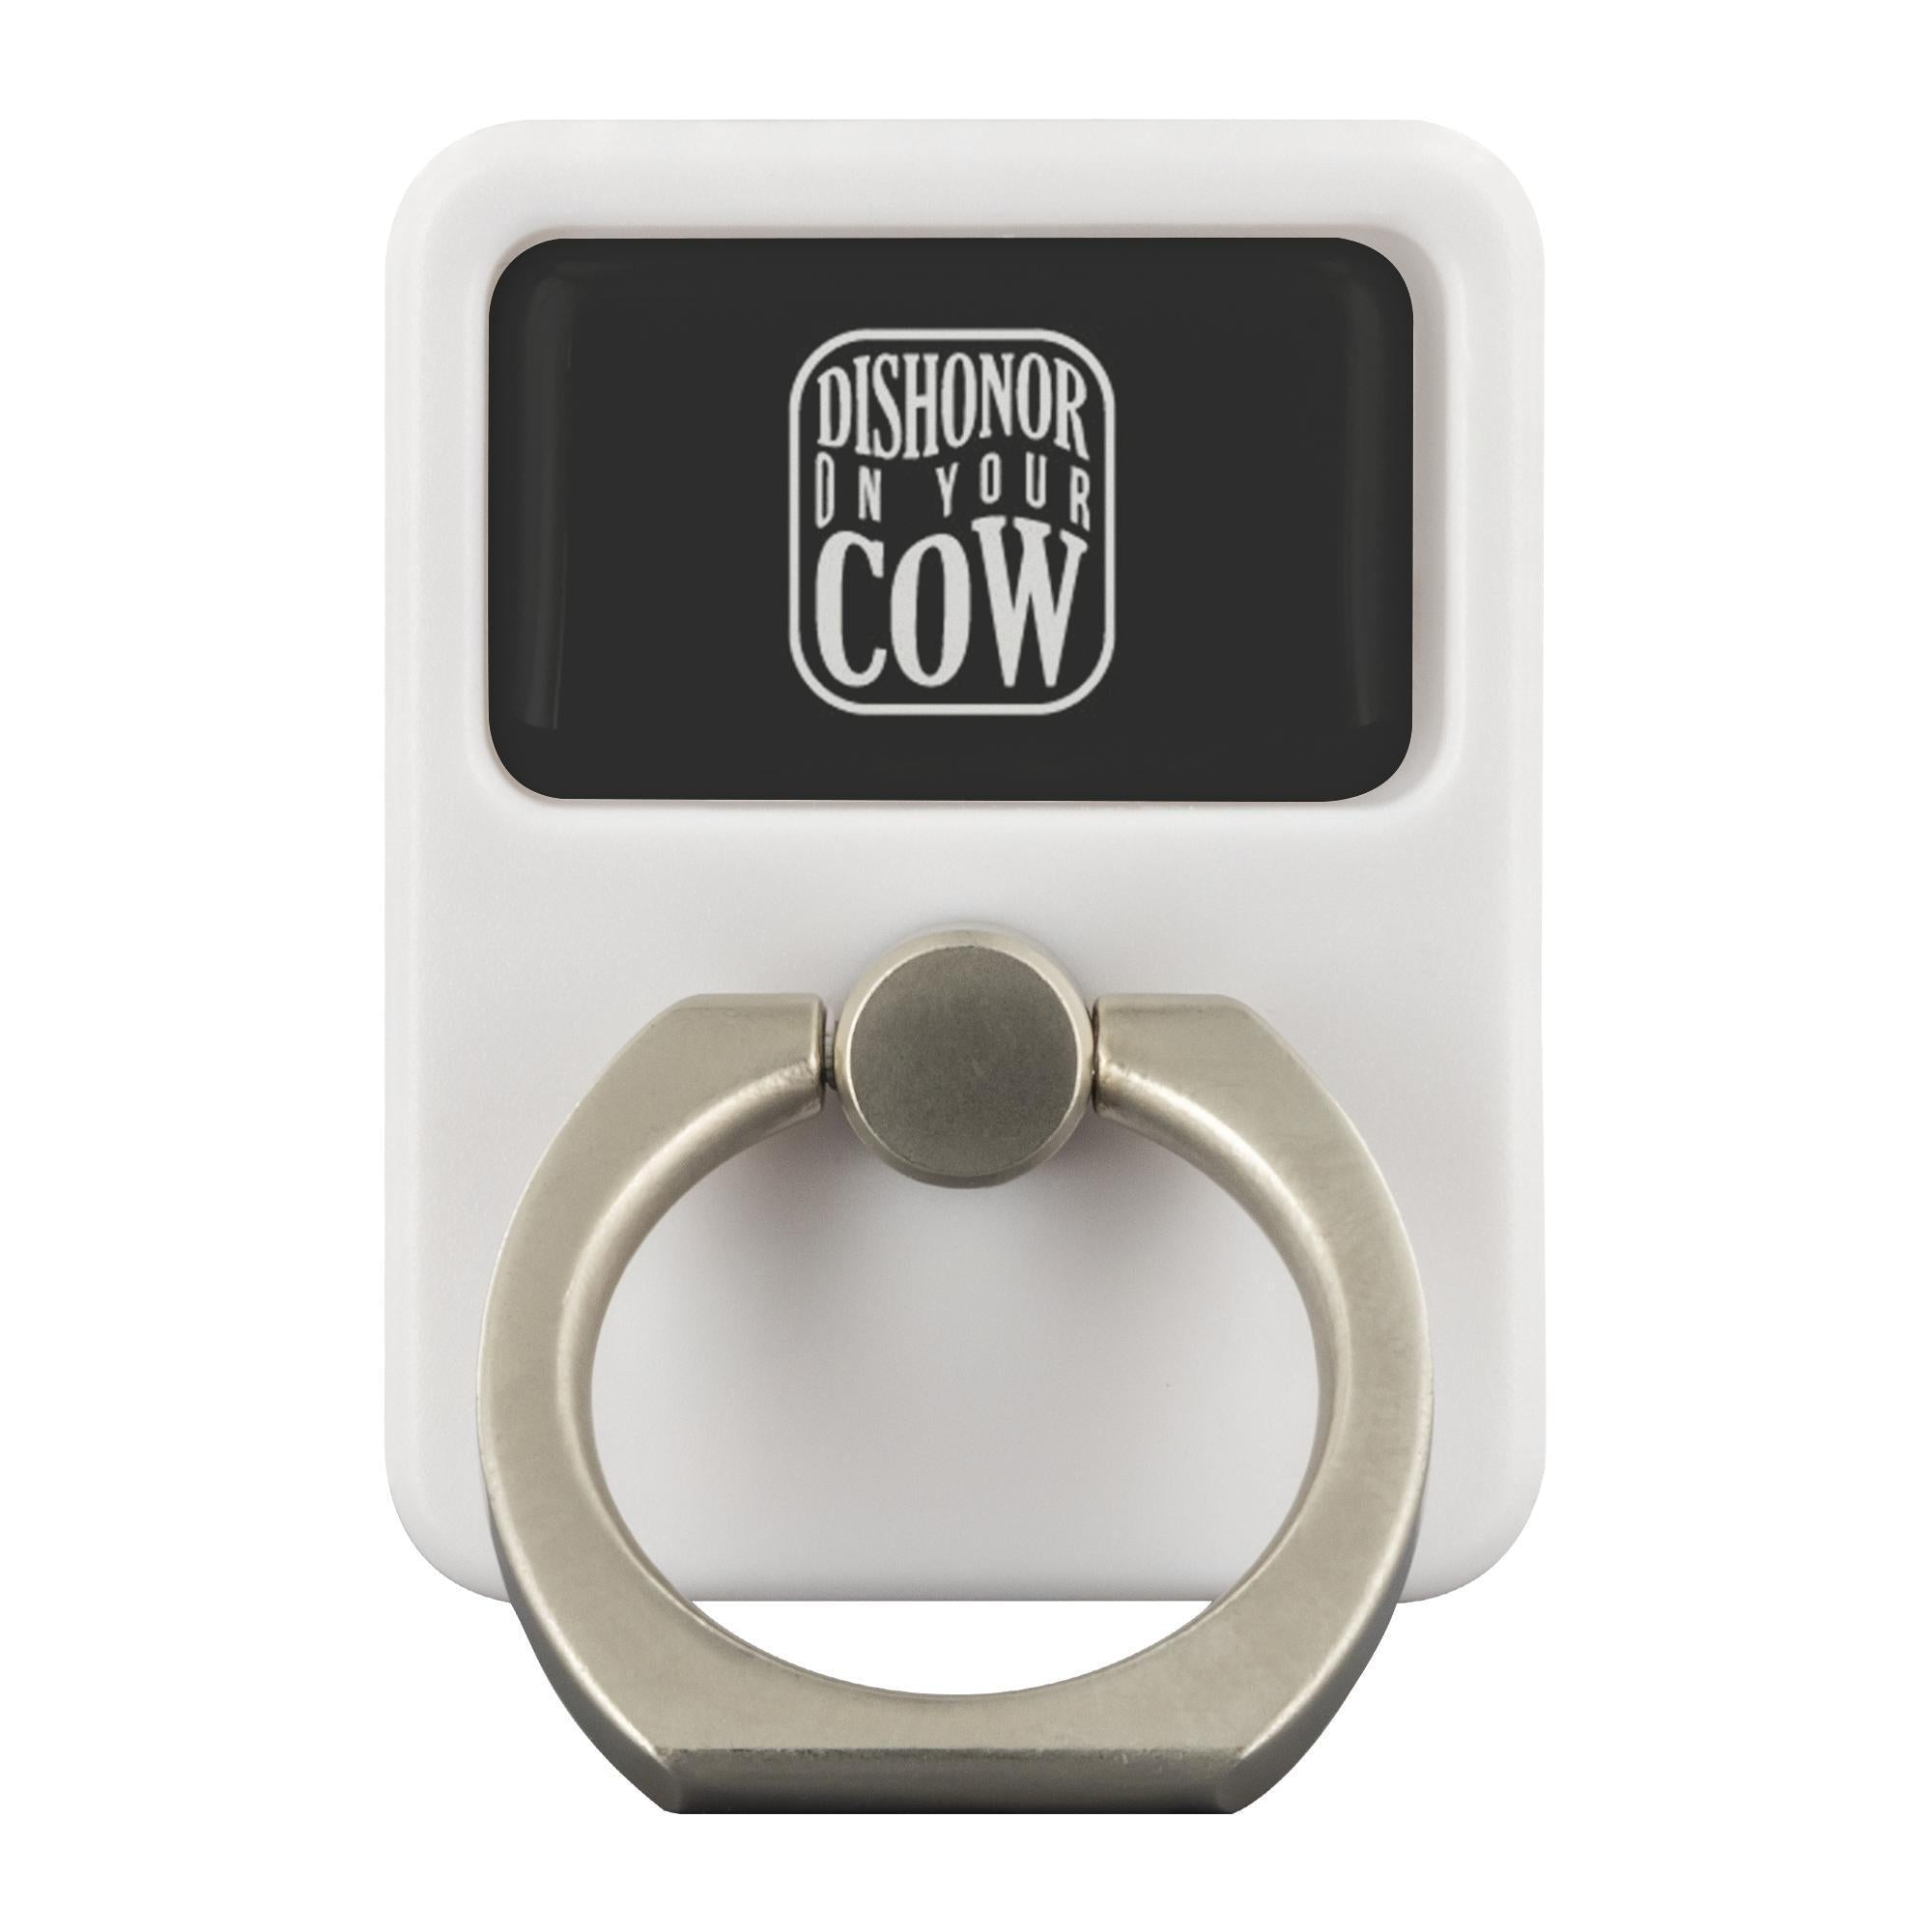 Dishonor On Your Cow Funny Phone Ring Holder Kickstand Humor Gift Gag Sarcasm-Ringr - Multi-Tool Accessory-Ringr - Multi-Tool Accessory-JoyHip.Com